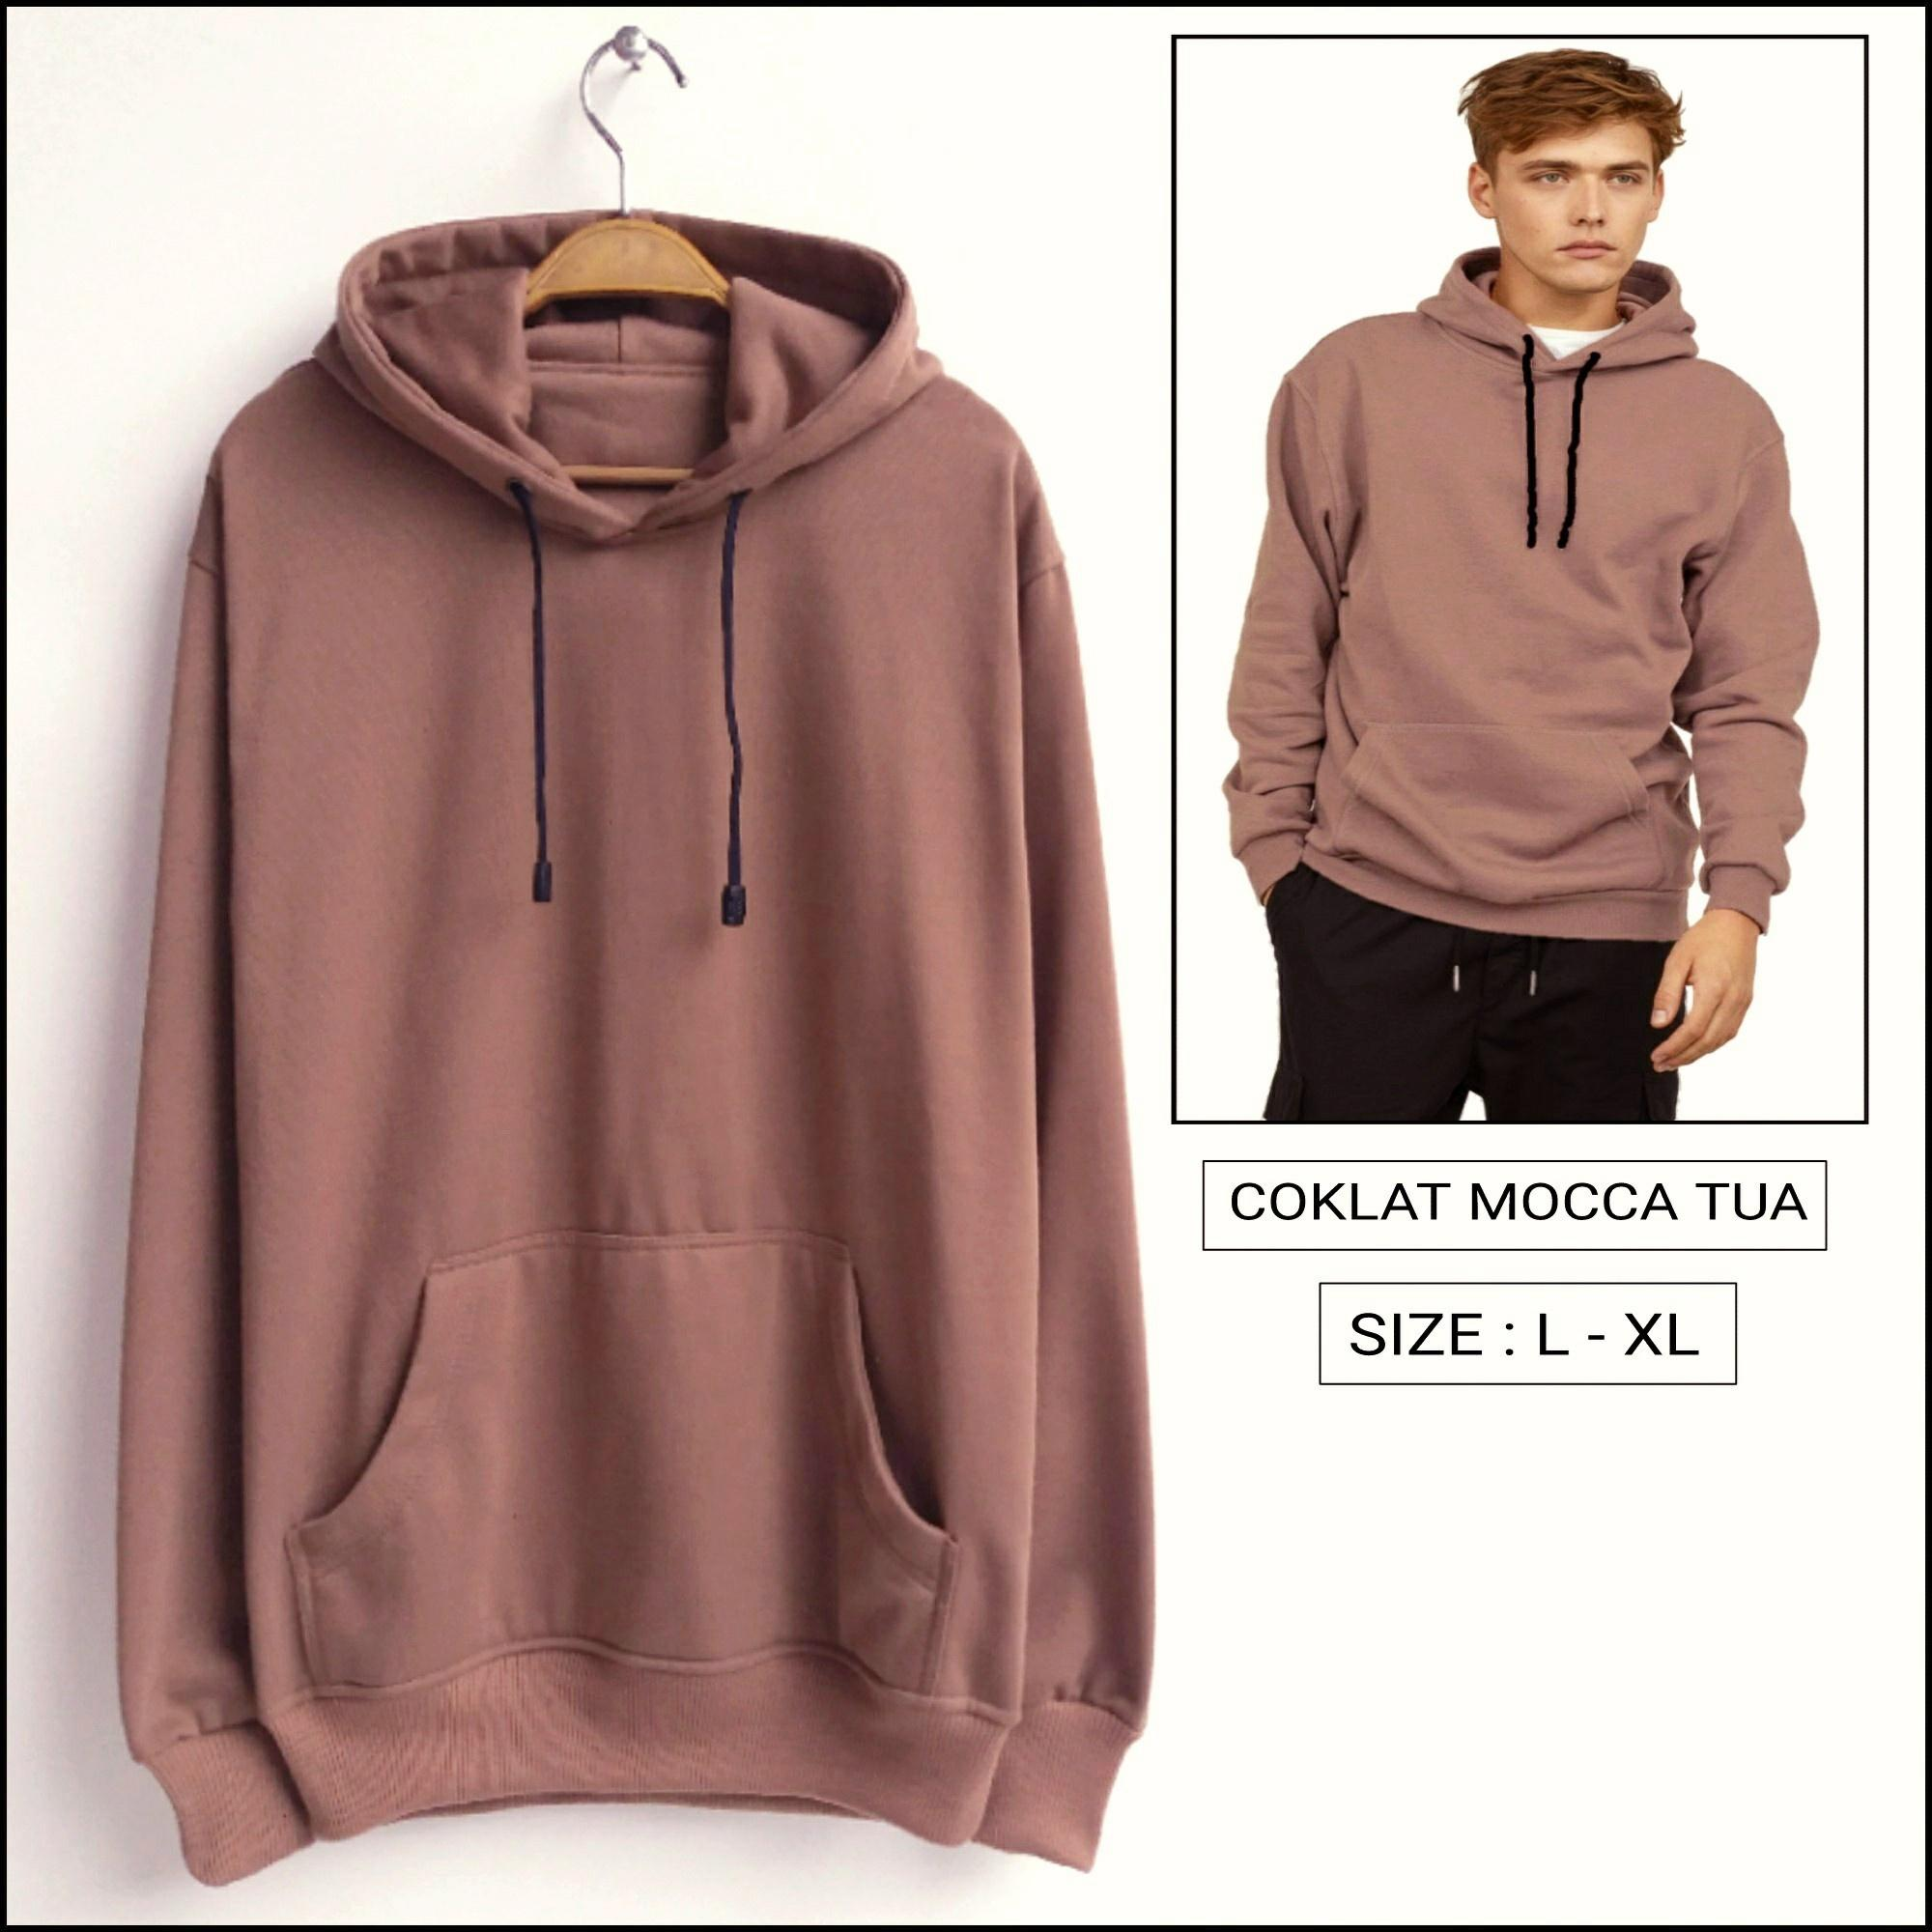 SWEATER HOODIE JUMPER POLOS COKLAT MOCCA